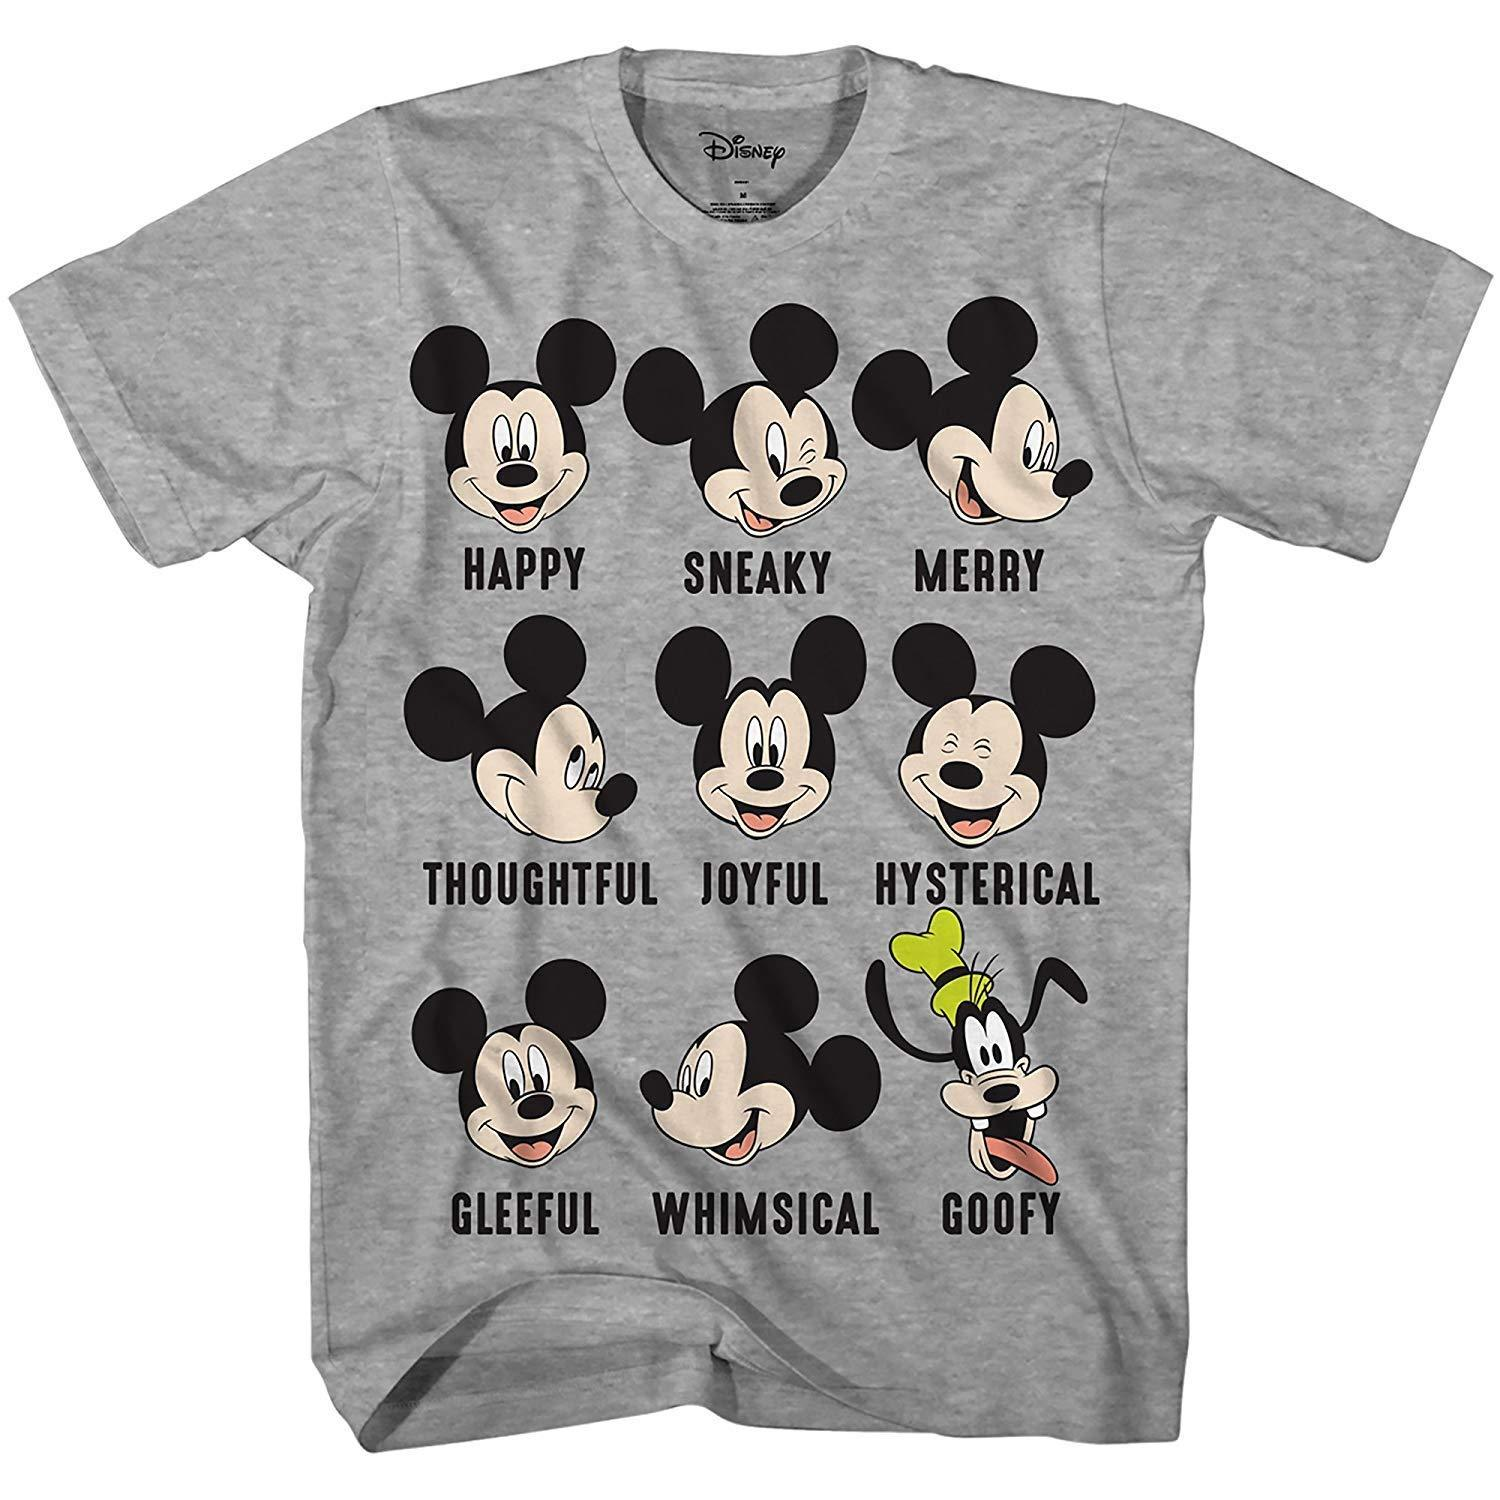 Disney Mickey Mouse Goofy Expressions Mood Disneyland World Funny Humor Pun Mens Adult Graphic Tee T-Shirt (Heather Grey)